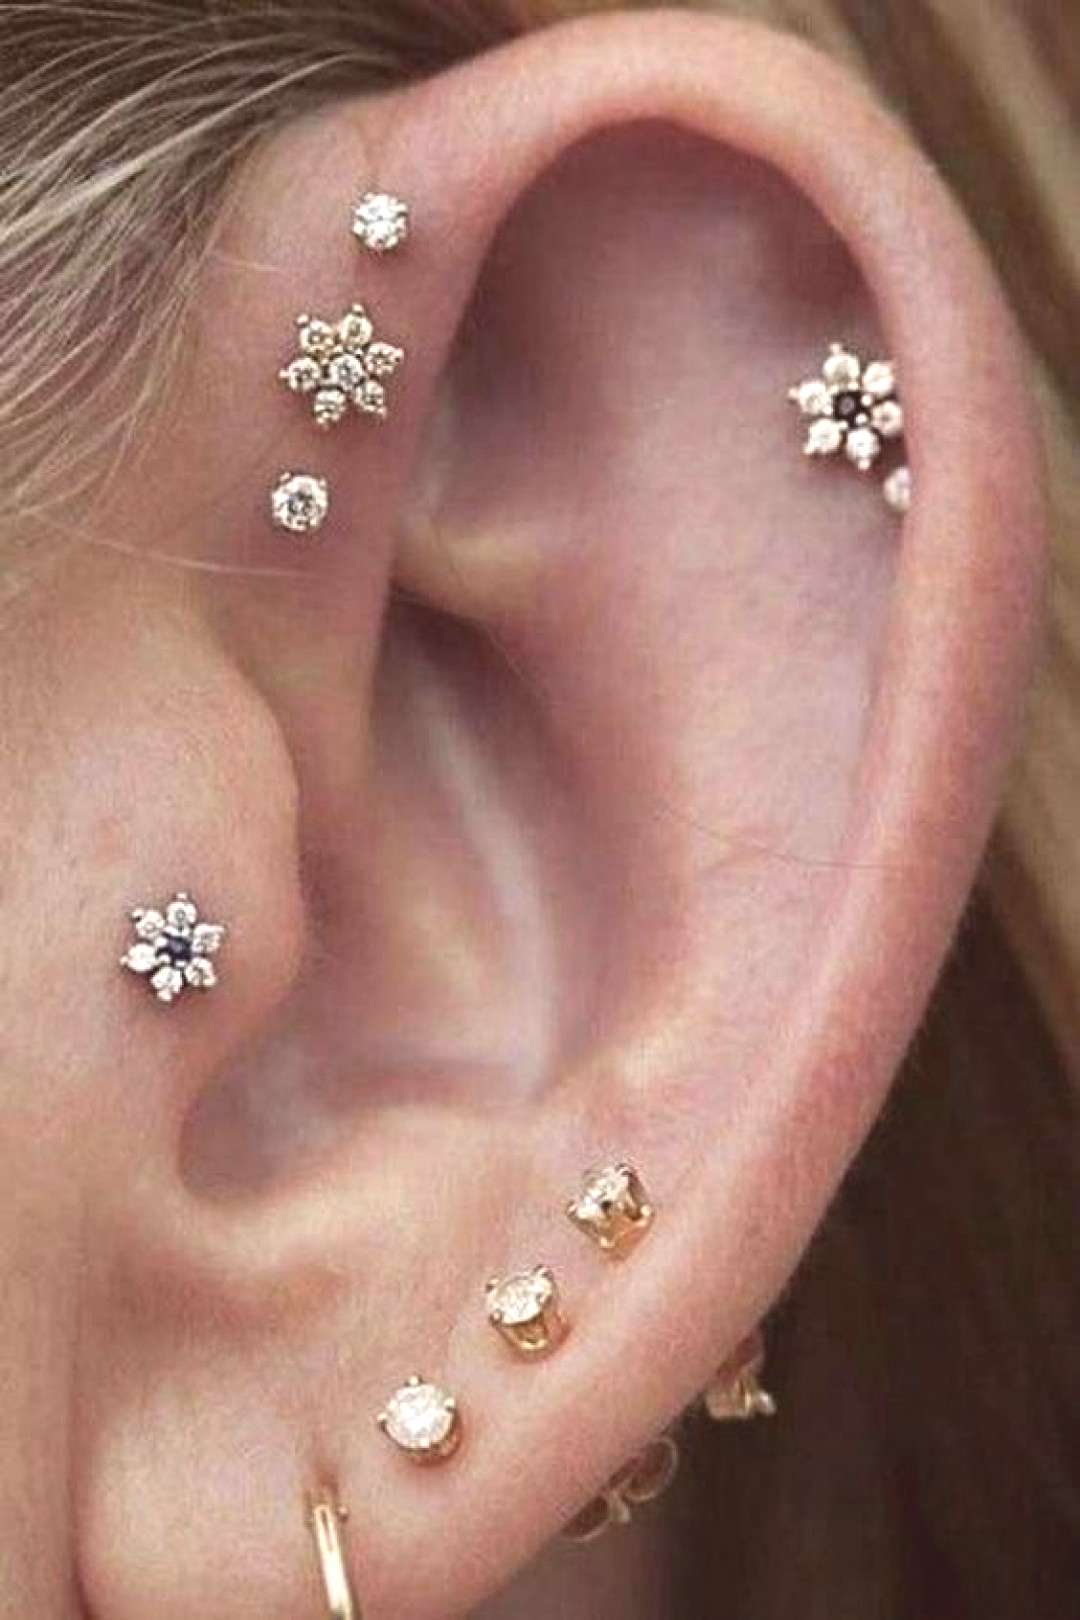 Stephanie Cristi shares a gallery of constellation piercings inspiring the piercing she will get wi